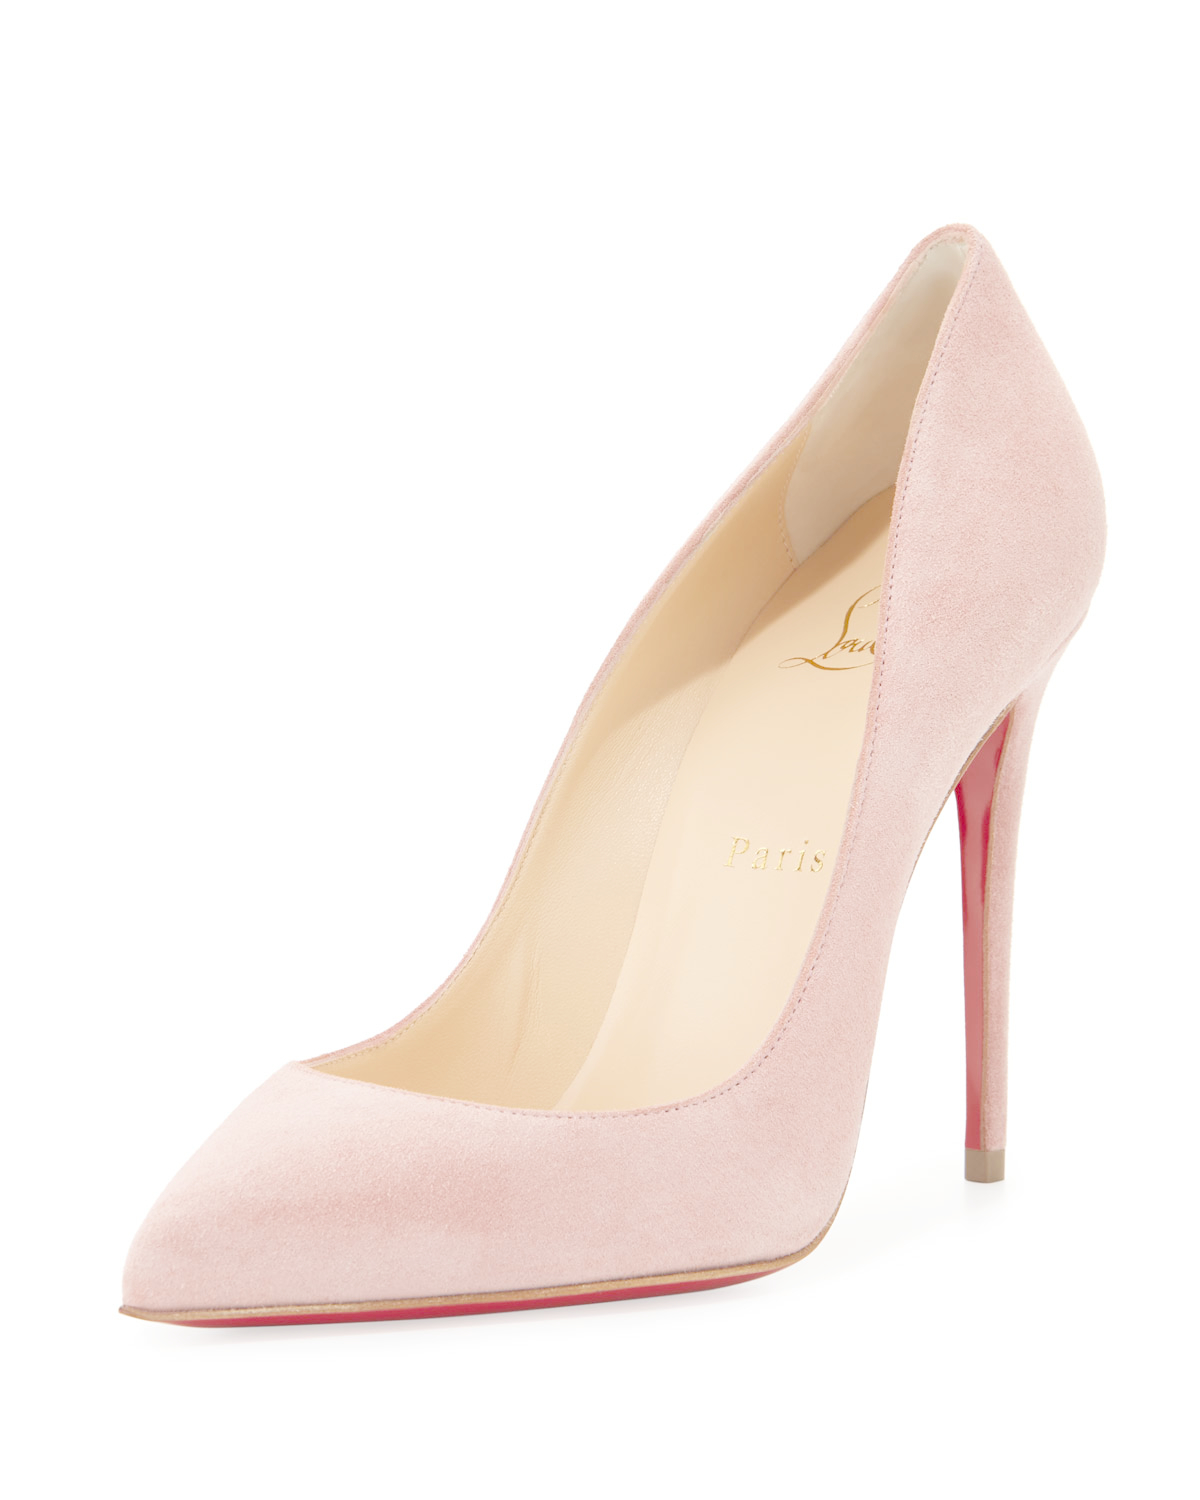 2359251a4f6 Gallery. Previously sold at  Bergdorf Goodman · Women s Christian Louboutin  Pigalle ...